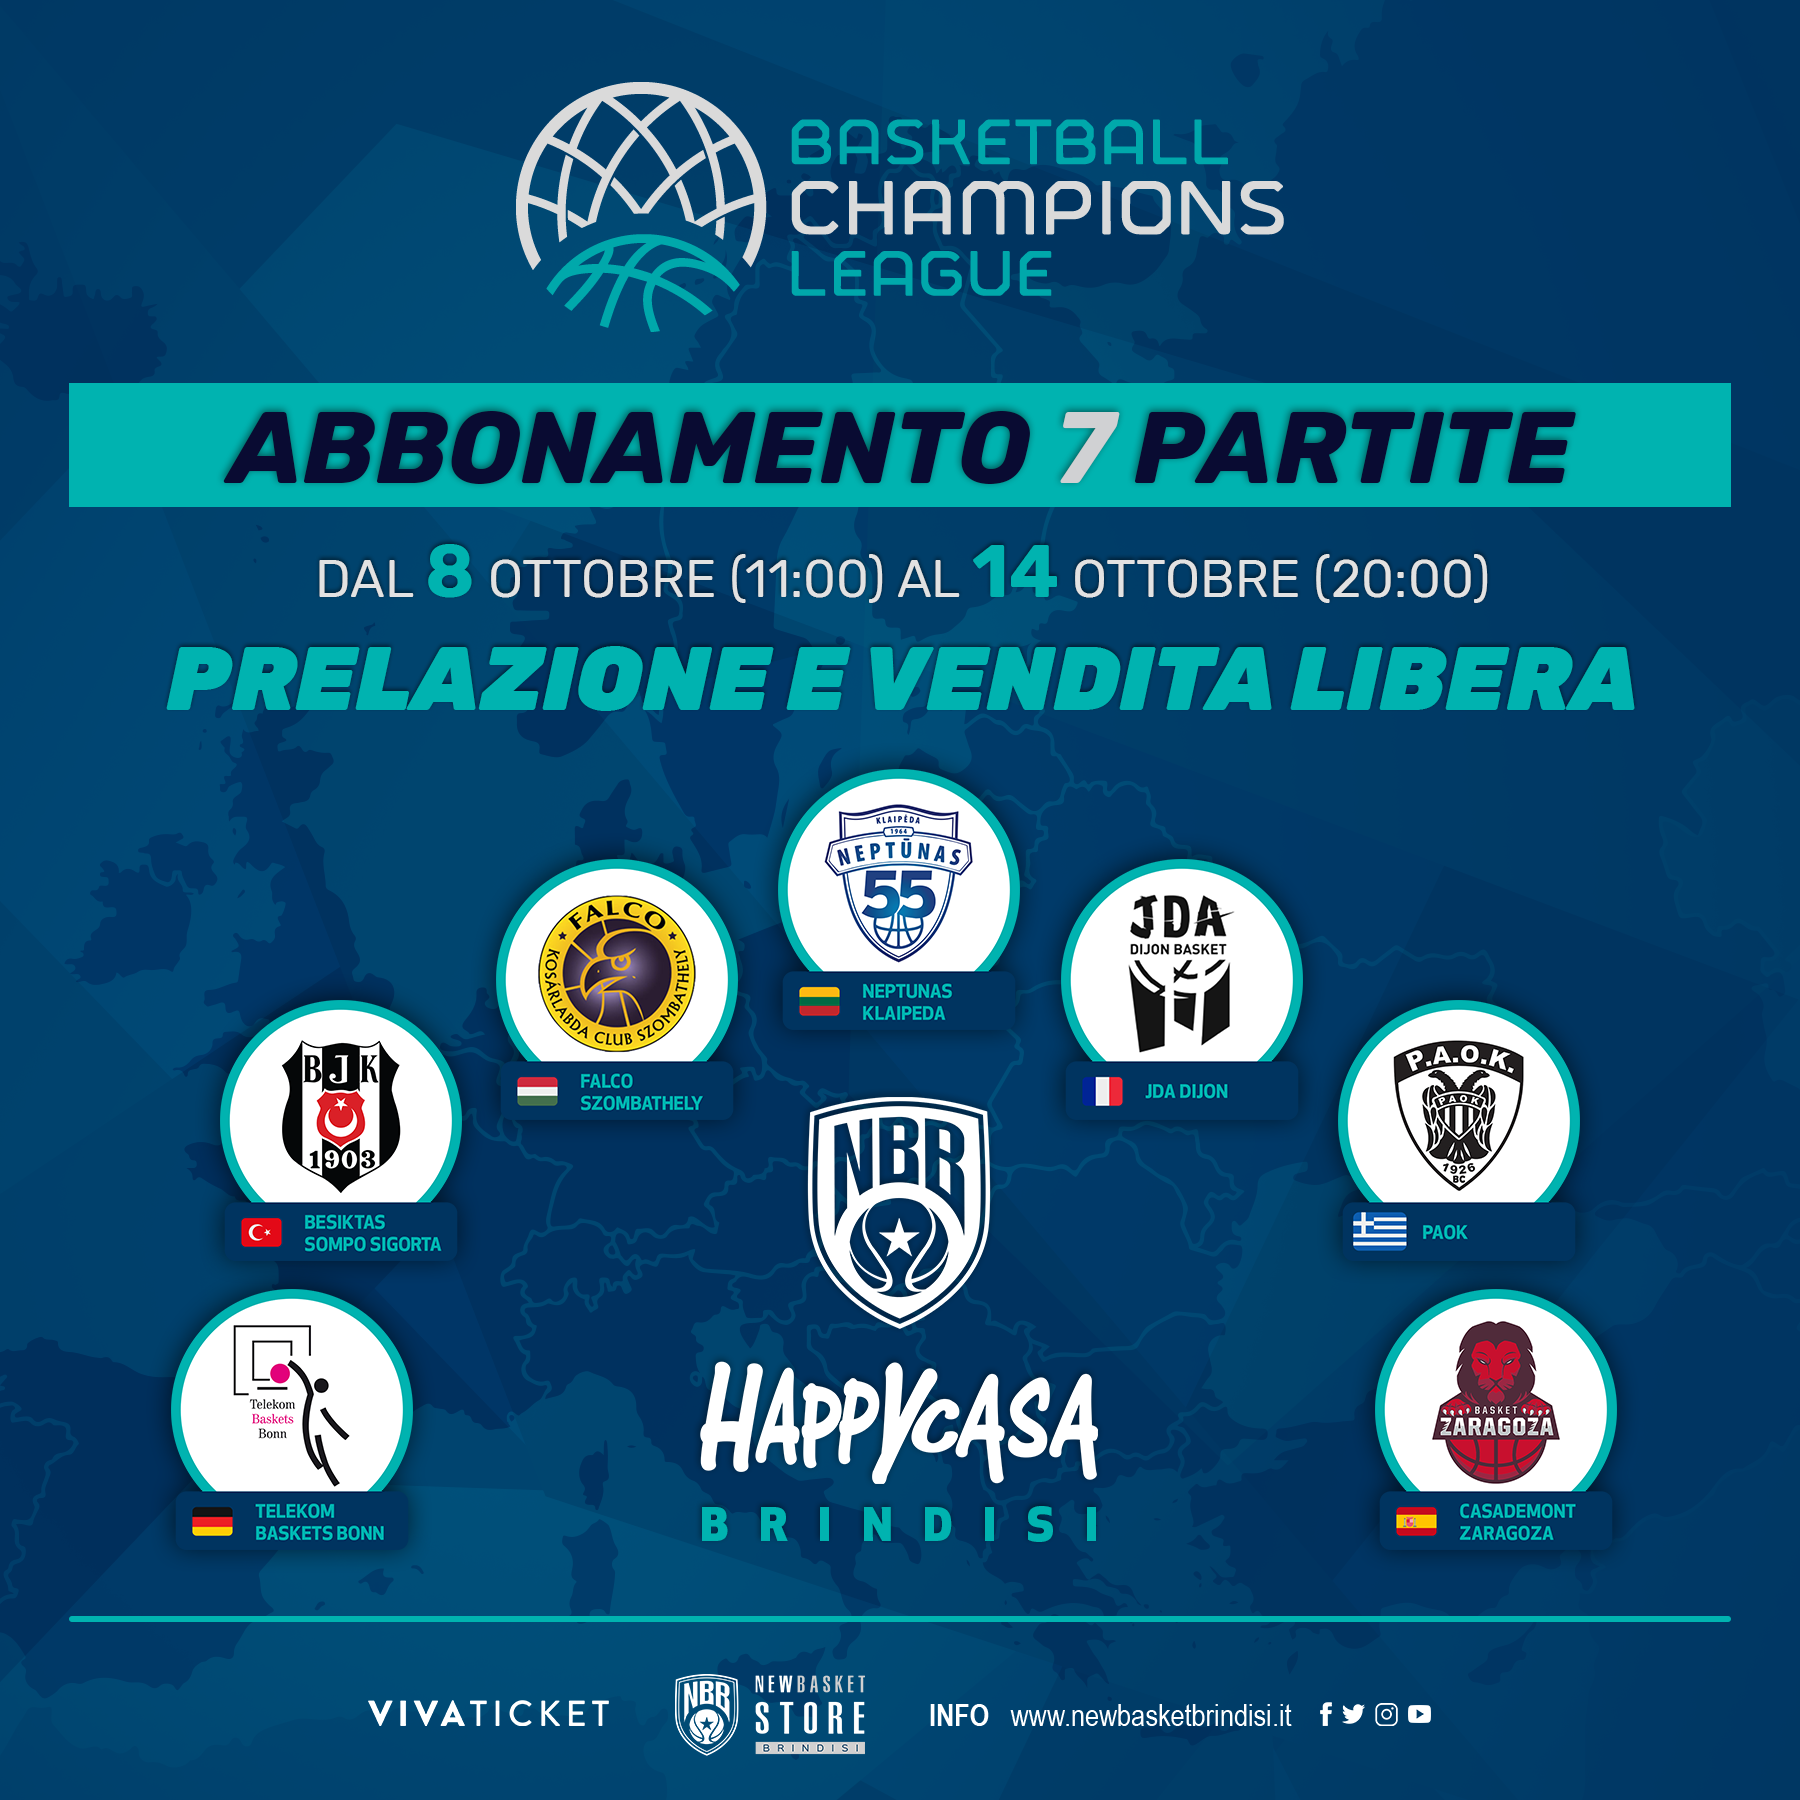 https://www.newbasketbrindisi.it/wp-content/uploads/2019/10/BCL_Abb_7_Partite.png